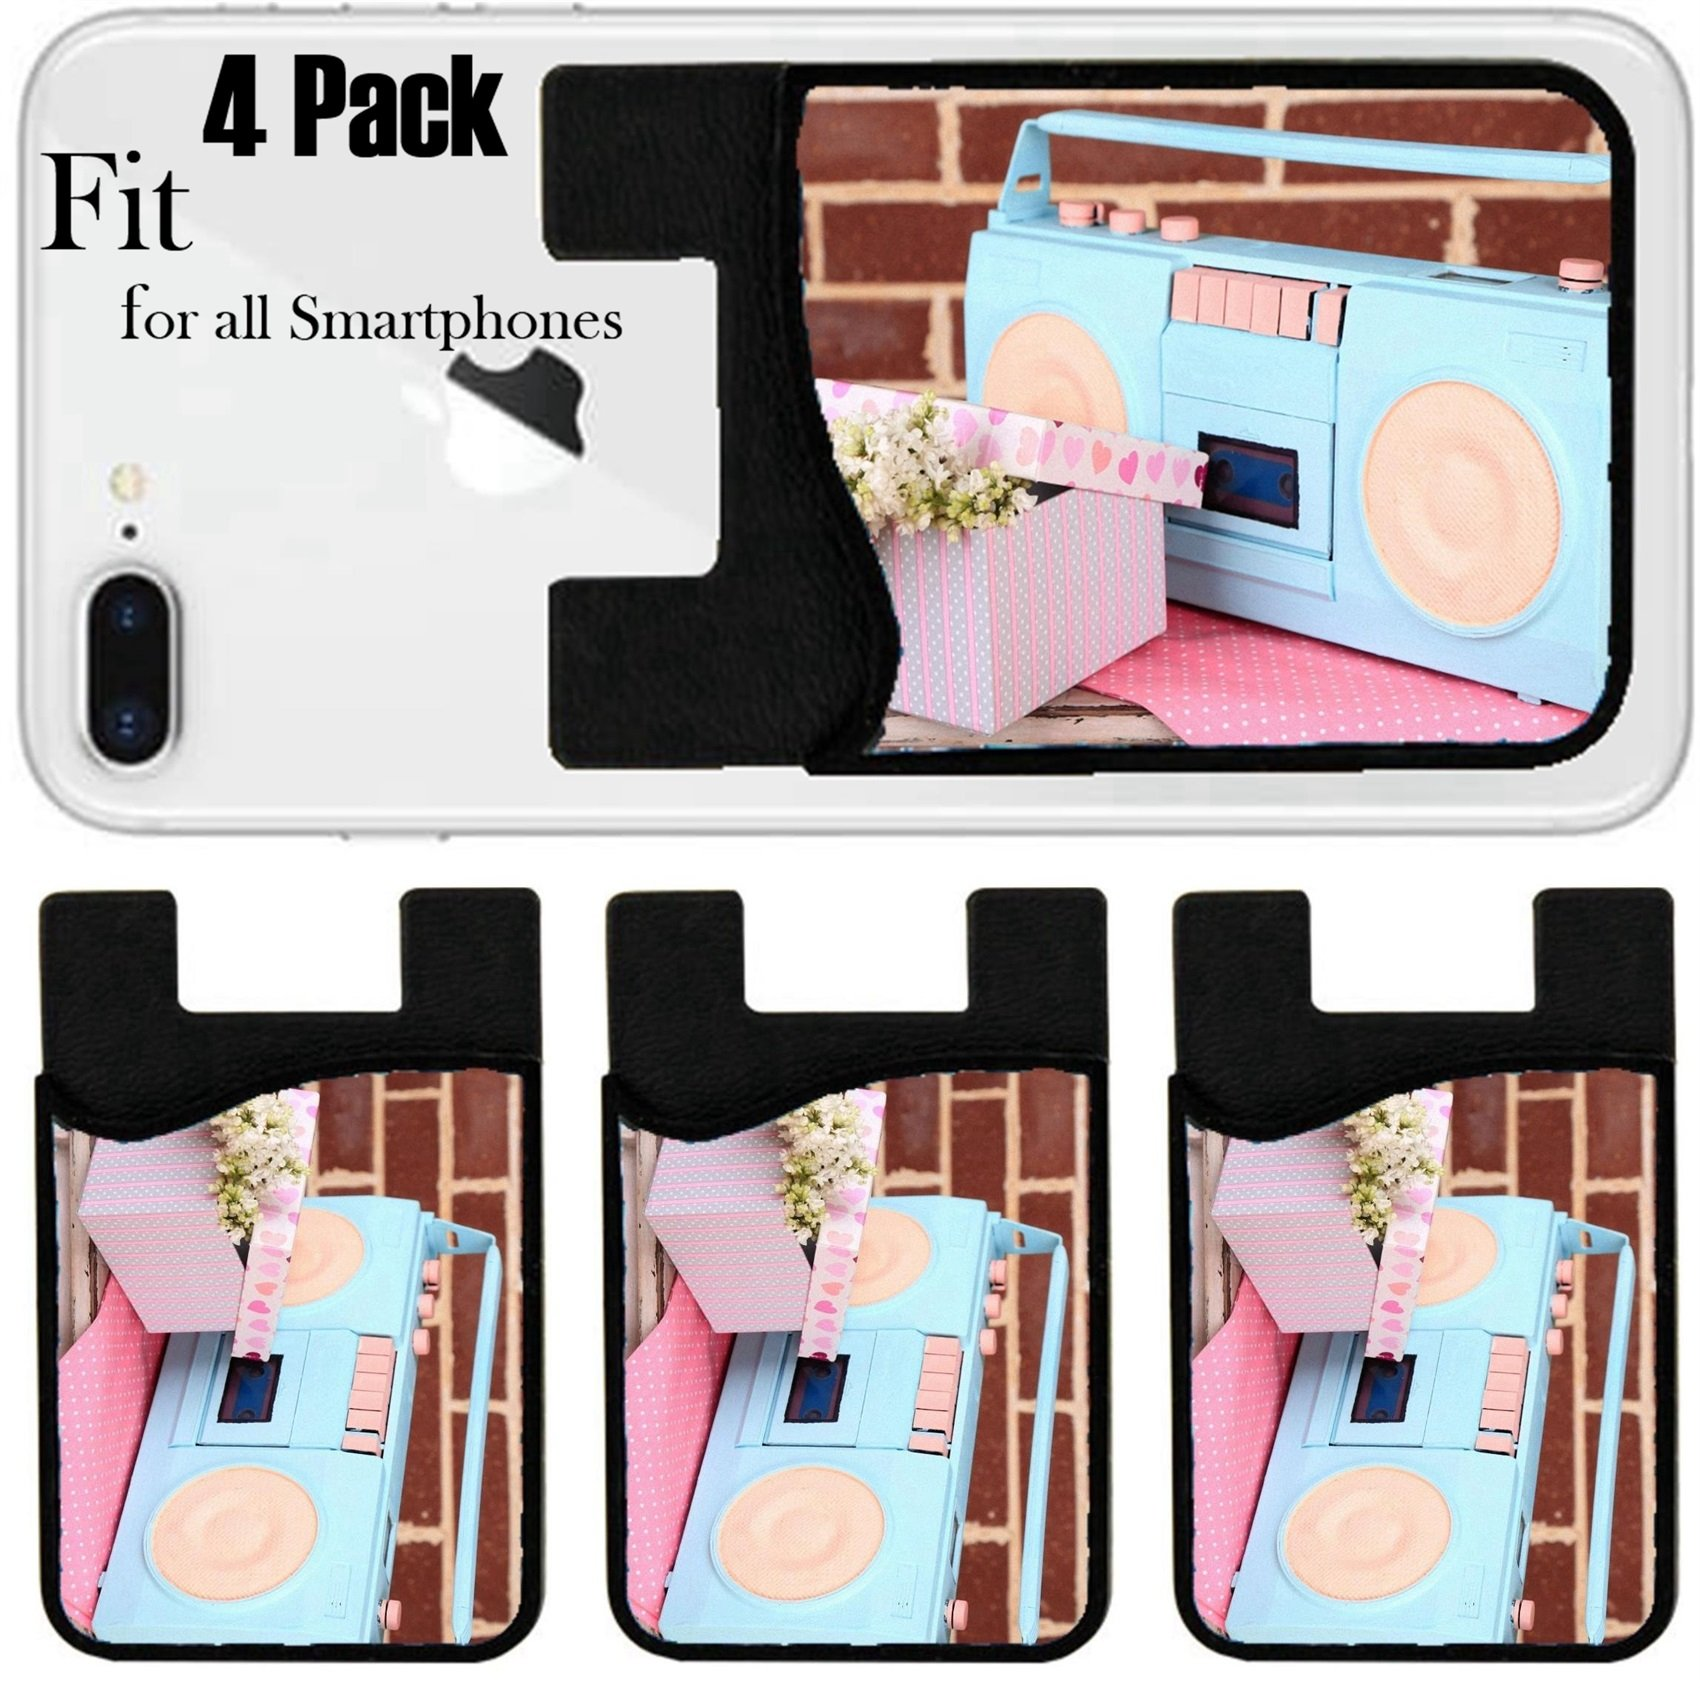 Liili Phone Card holder sleeve/wallet for iPhone Samsung Android and all smartphones with removable microfiber screen cleaner Silicone card Caddy(4 Pack) Still life with colorful retro radio on brick